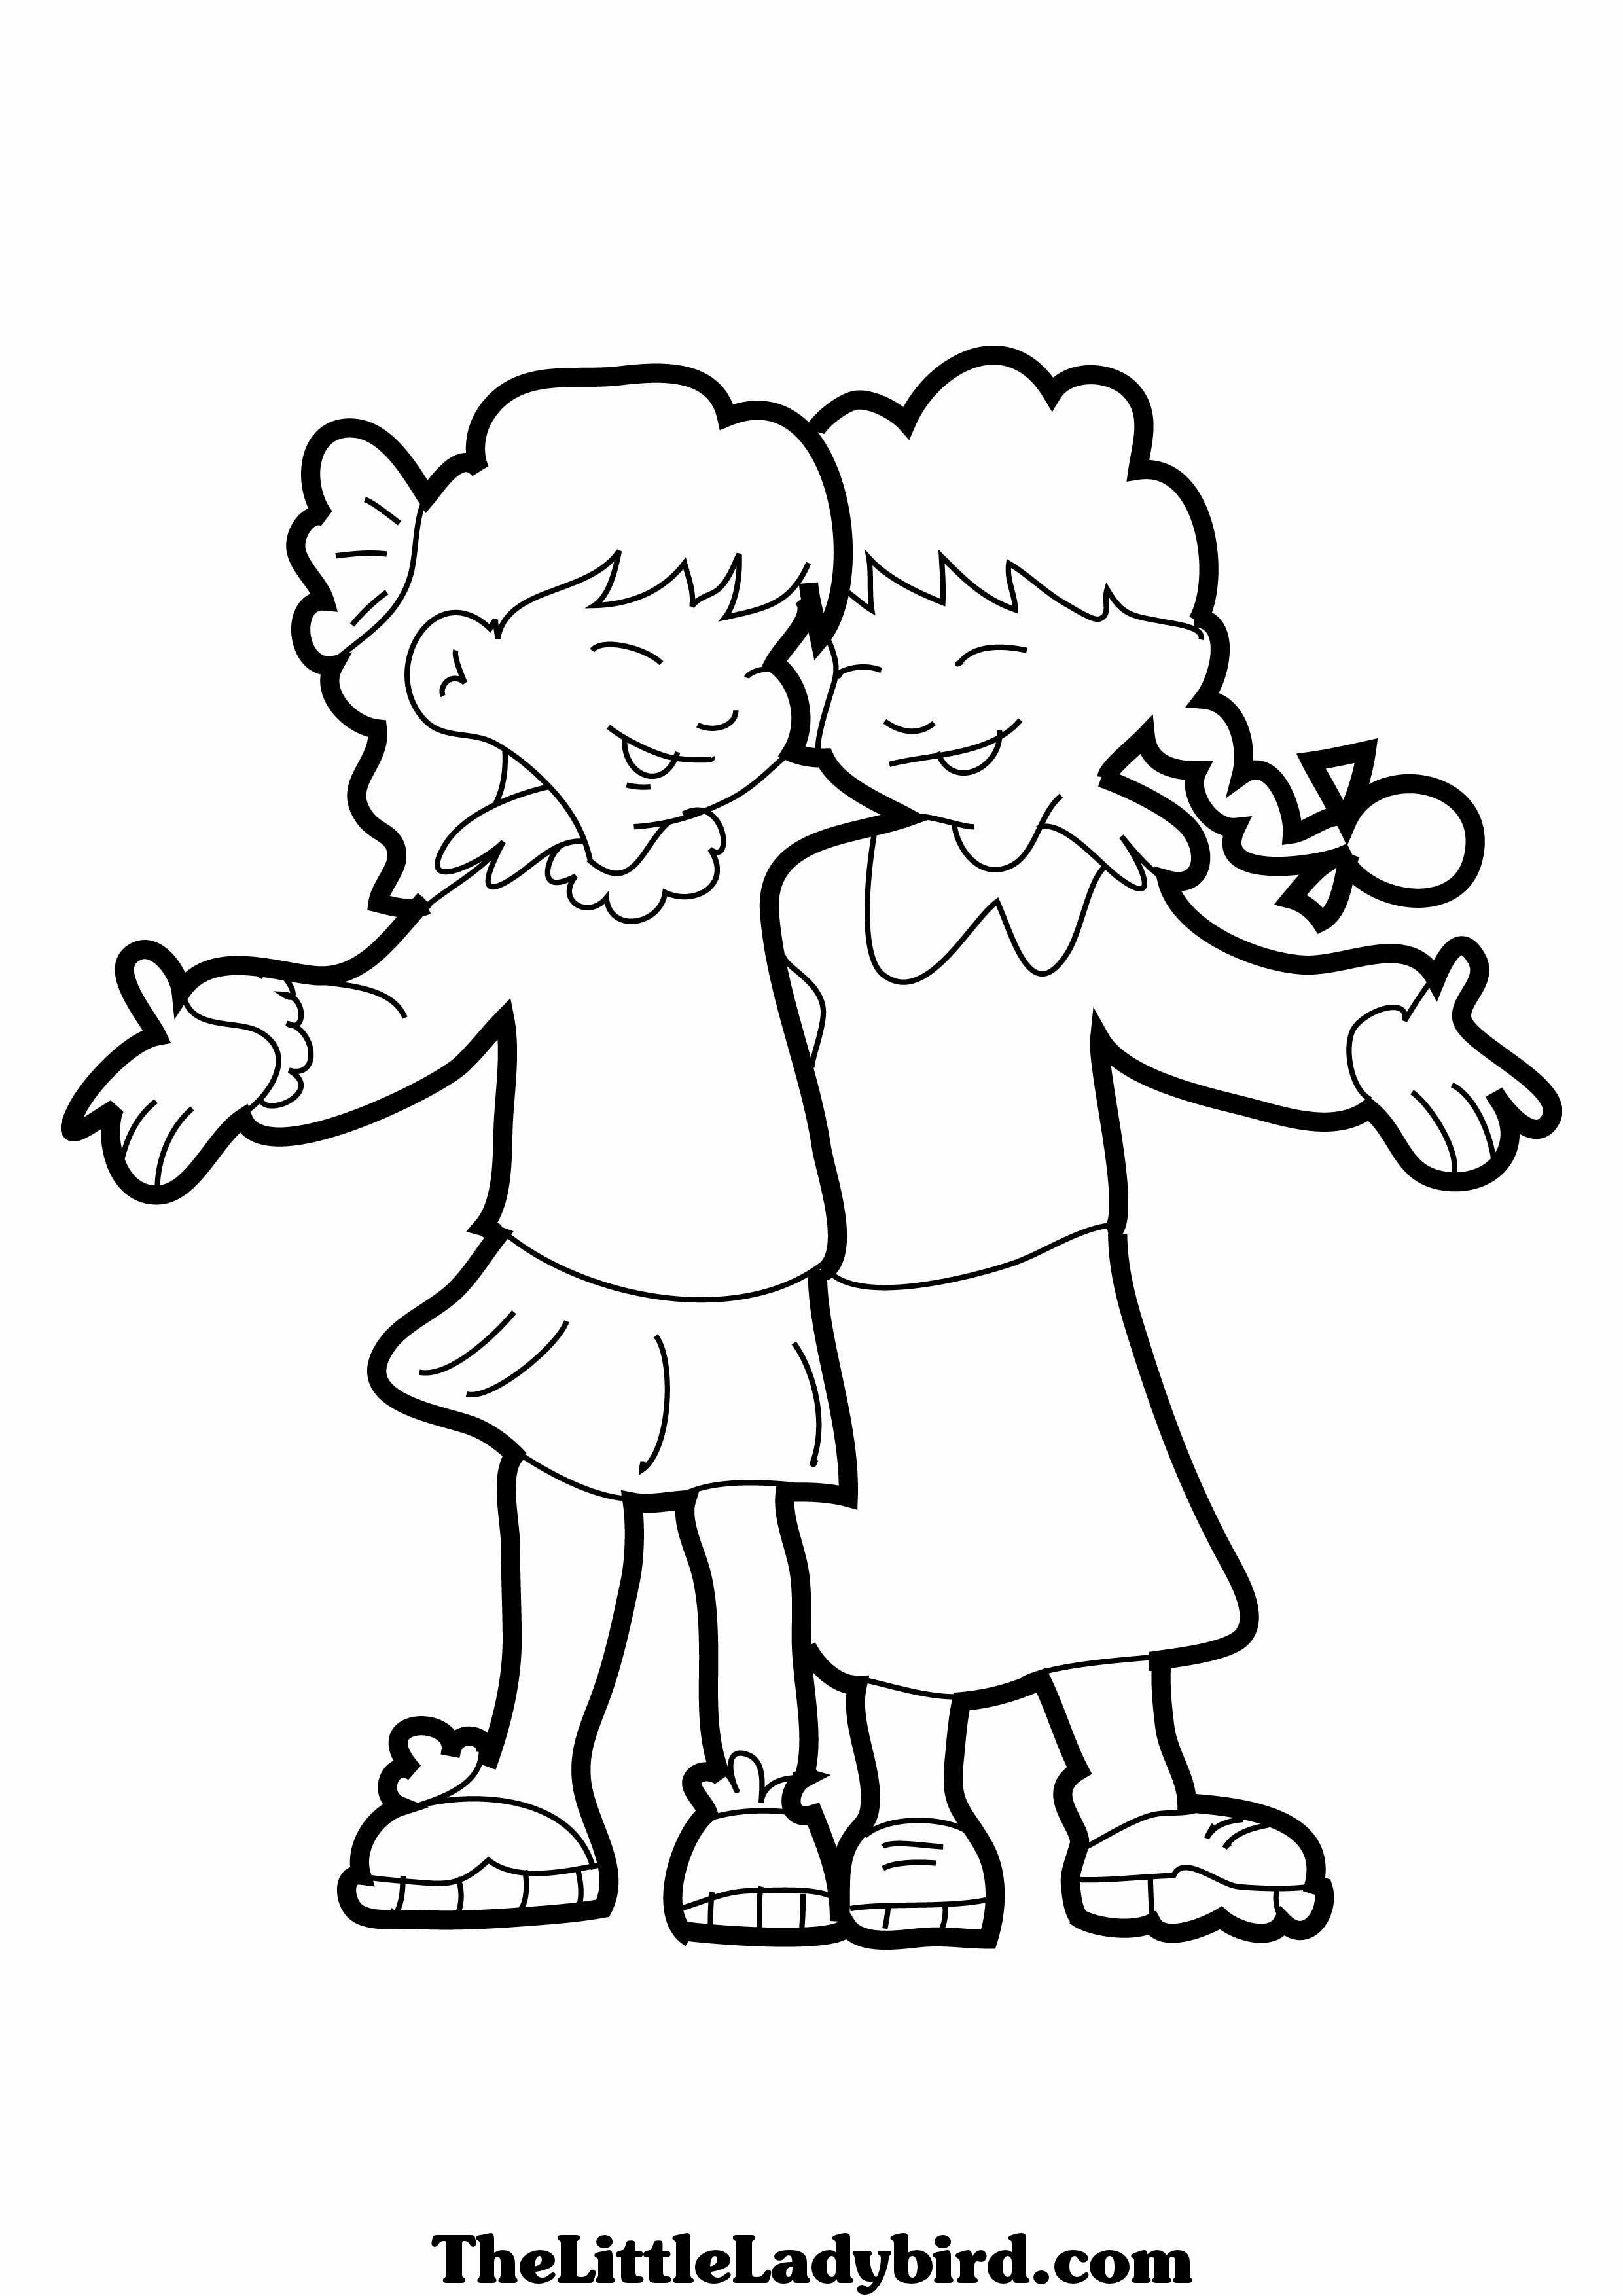 Two Girls Drawing at GetDrawings.com | Free for personal use Two ...